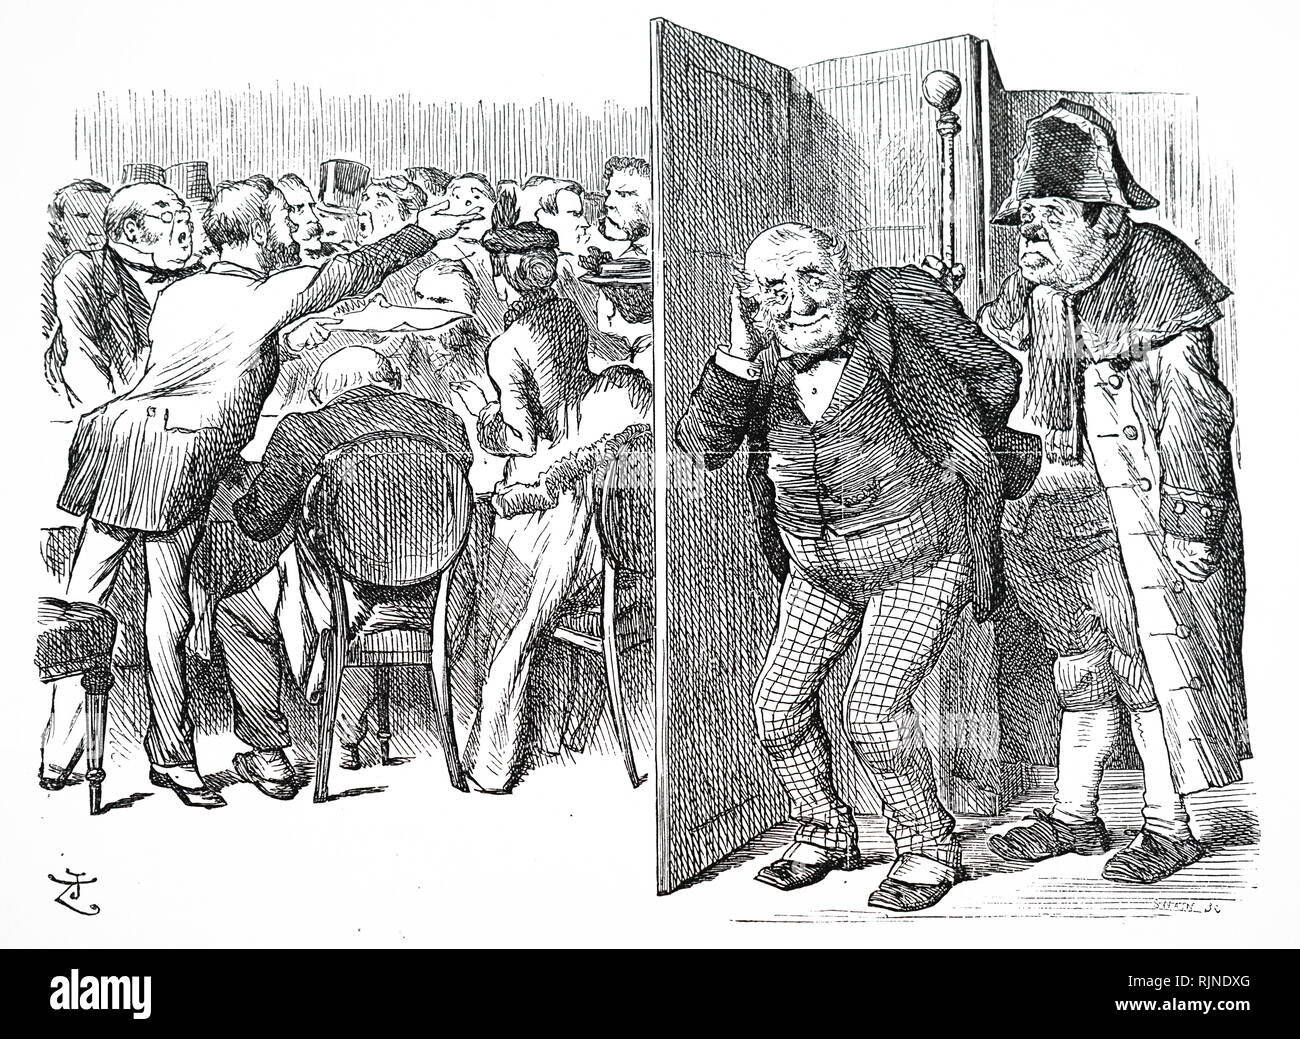 A cartoon depicting the London County Council constituted by the Local Government Act of 1888, and took on responsibilities of the Metropolitan Board of Works. The First Council elected Lady Sandhurst and Miss Cobden on the 7th January 1889. - Stock Image